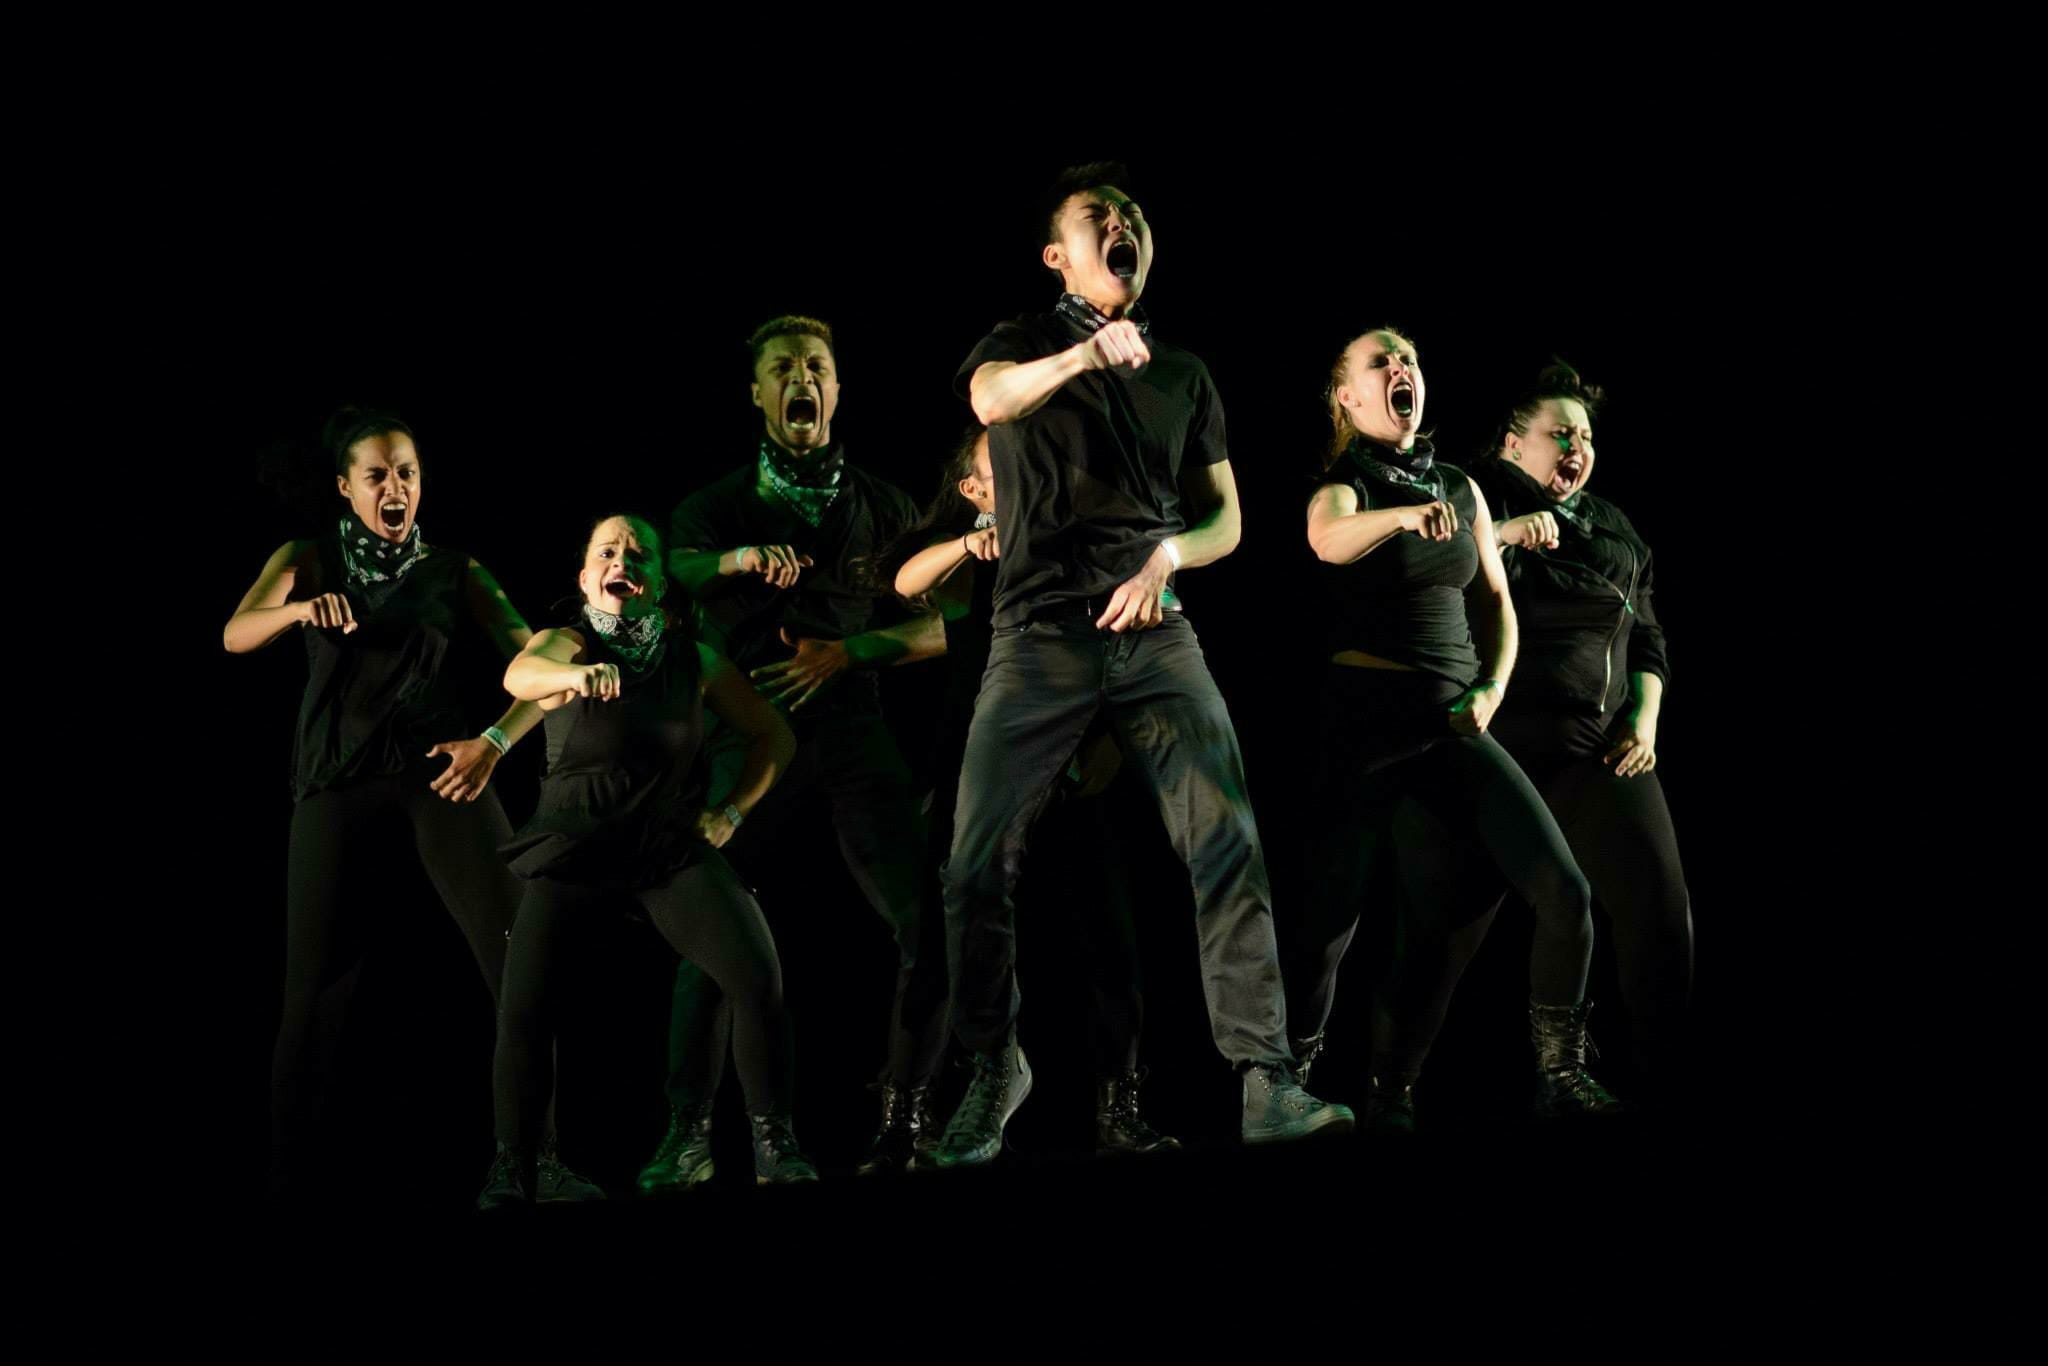 Urban Movement, co-founded by Chris, performing Chris'  Bugatti  piece.